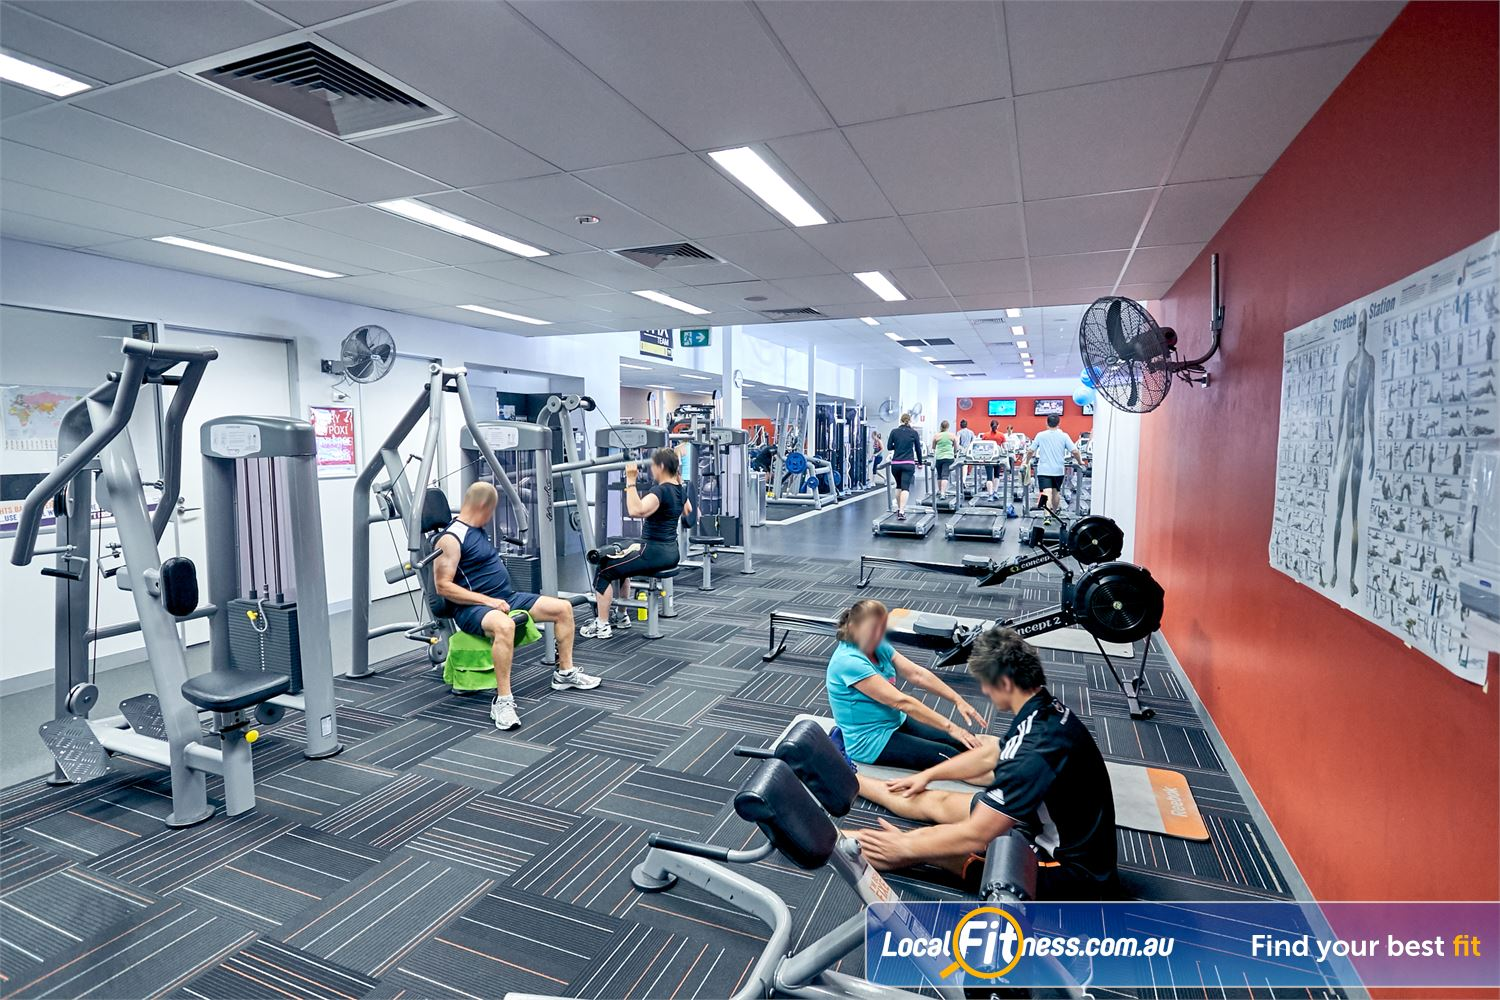 Goodlife Health Clubs Cross Roads Westbourne Park Get 24/7 Westbourne Park gym access at Goodlife Cross Roads.